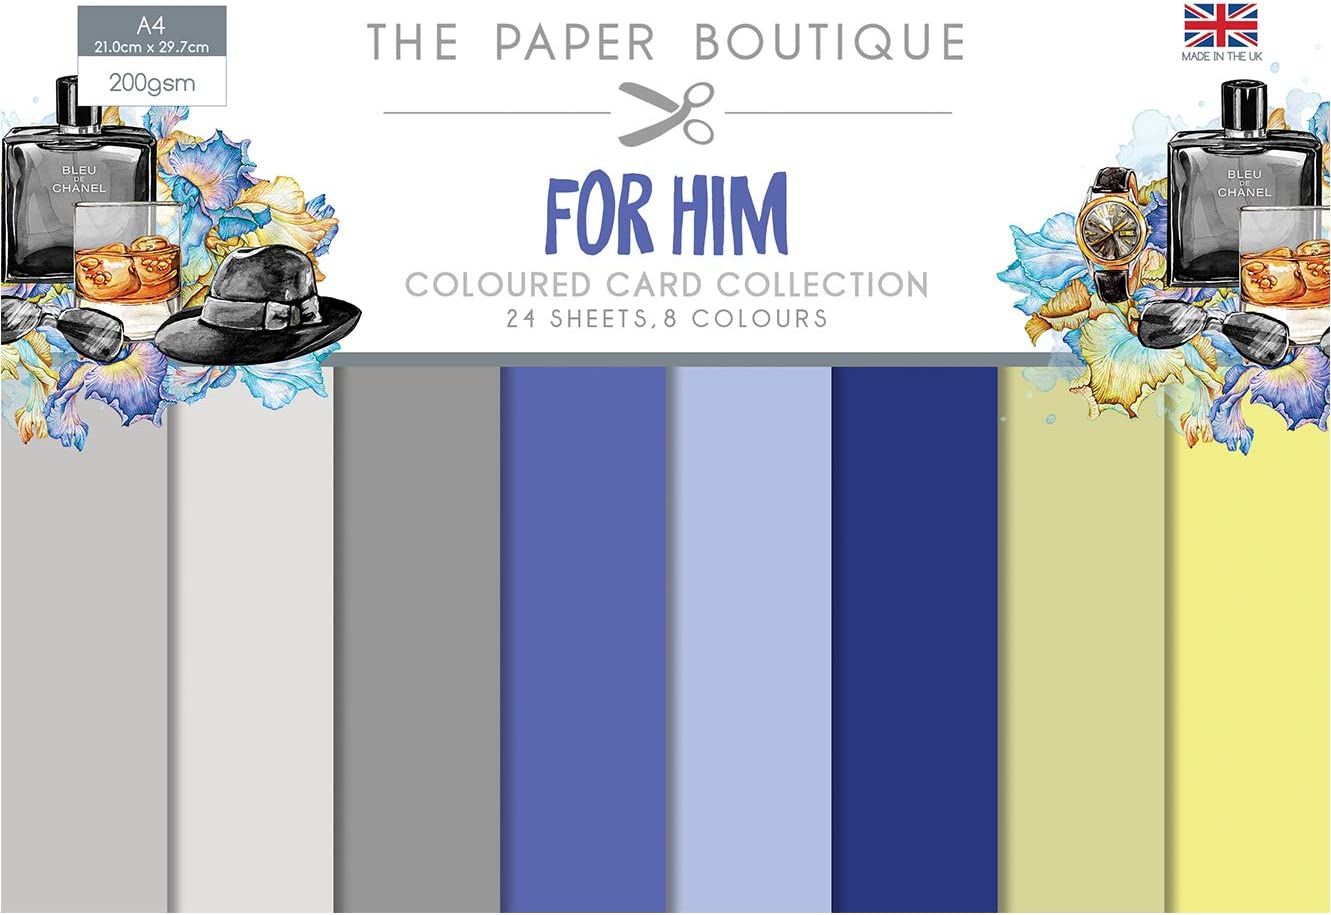 The Paper Boutique for Him Colour Card Collection